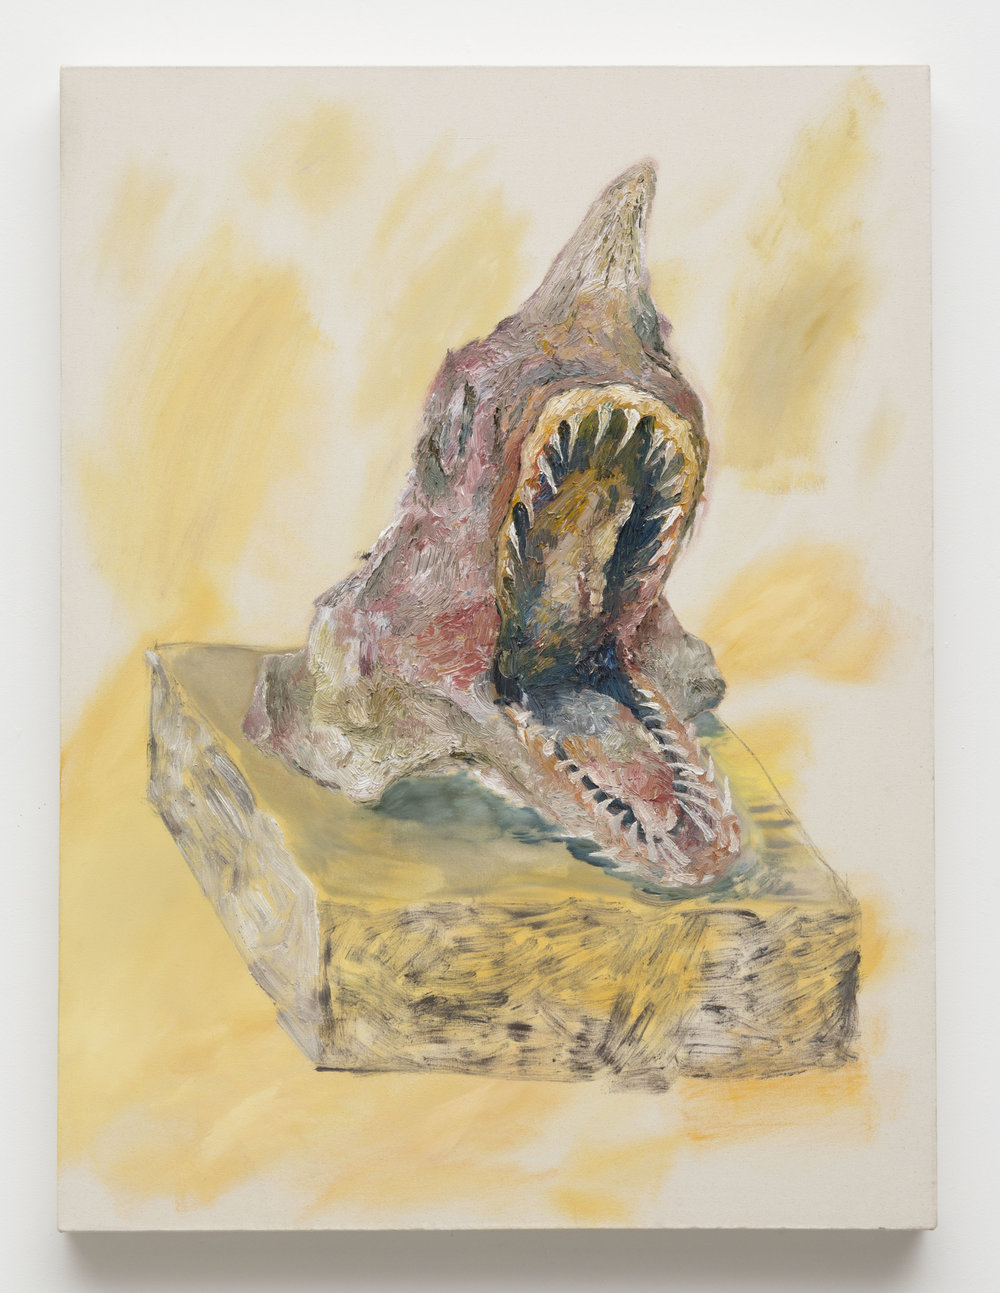 Shark Head Souvenir,  2014  Oil on canvas  36 x 26 x 3 inches